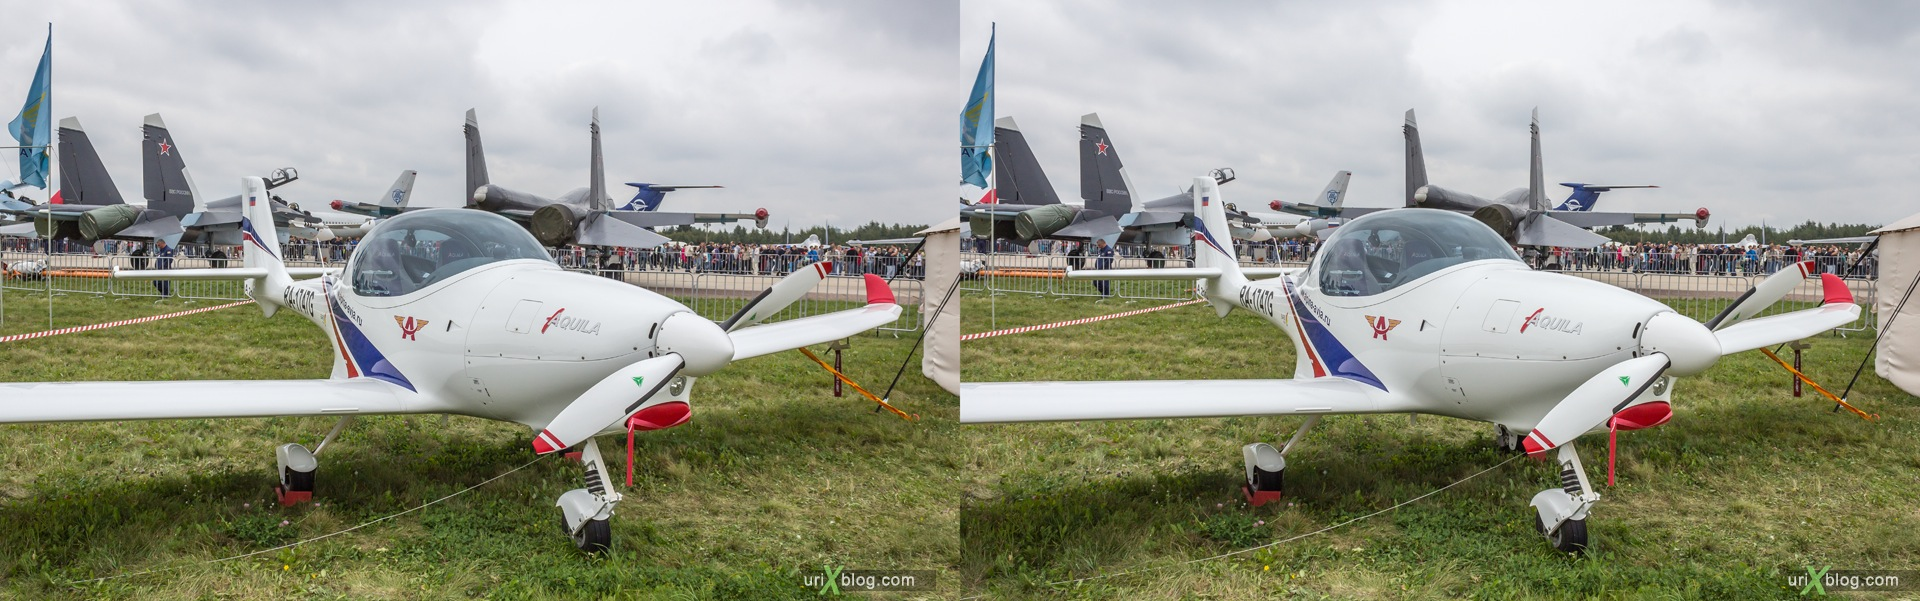 2013, Aquila A210, MAKS, International Aviation and Space Salon, Russia, Ramenskoye airfield, airplane, 3D, stereo pair, cross-eyed, crossview, cross view stereo pair, stereoscopic